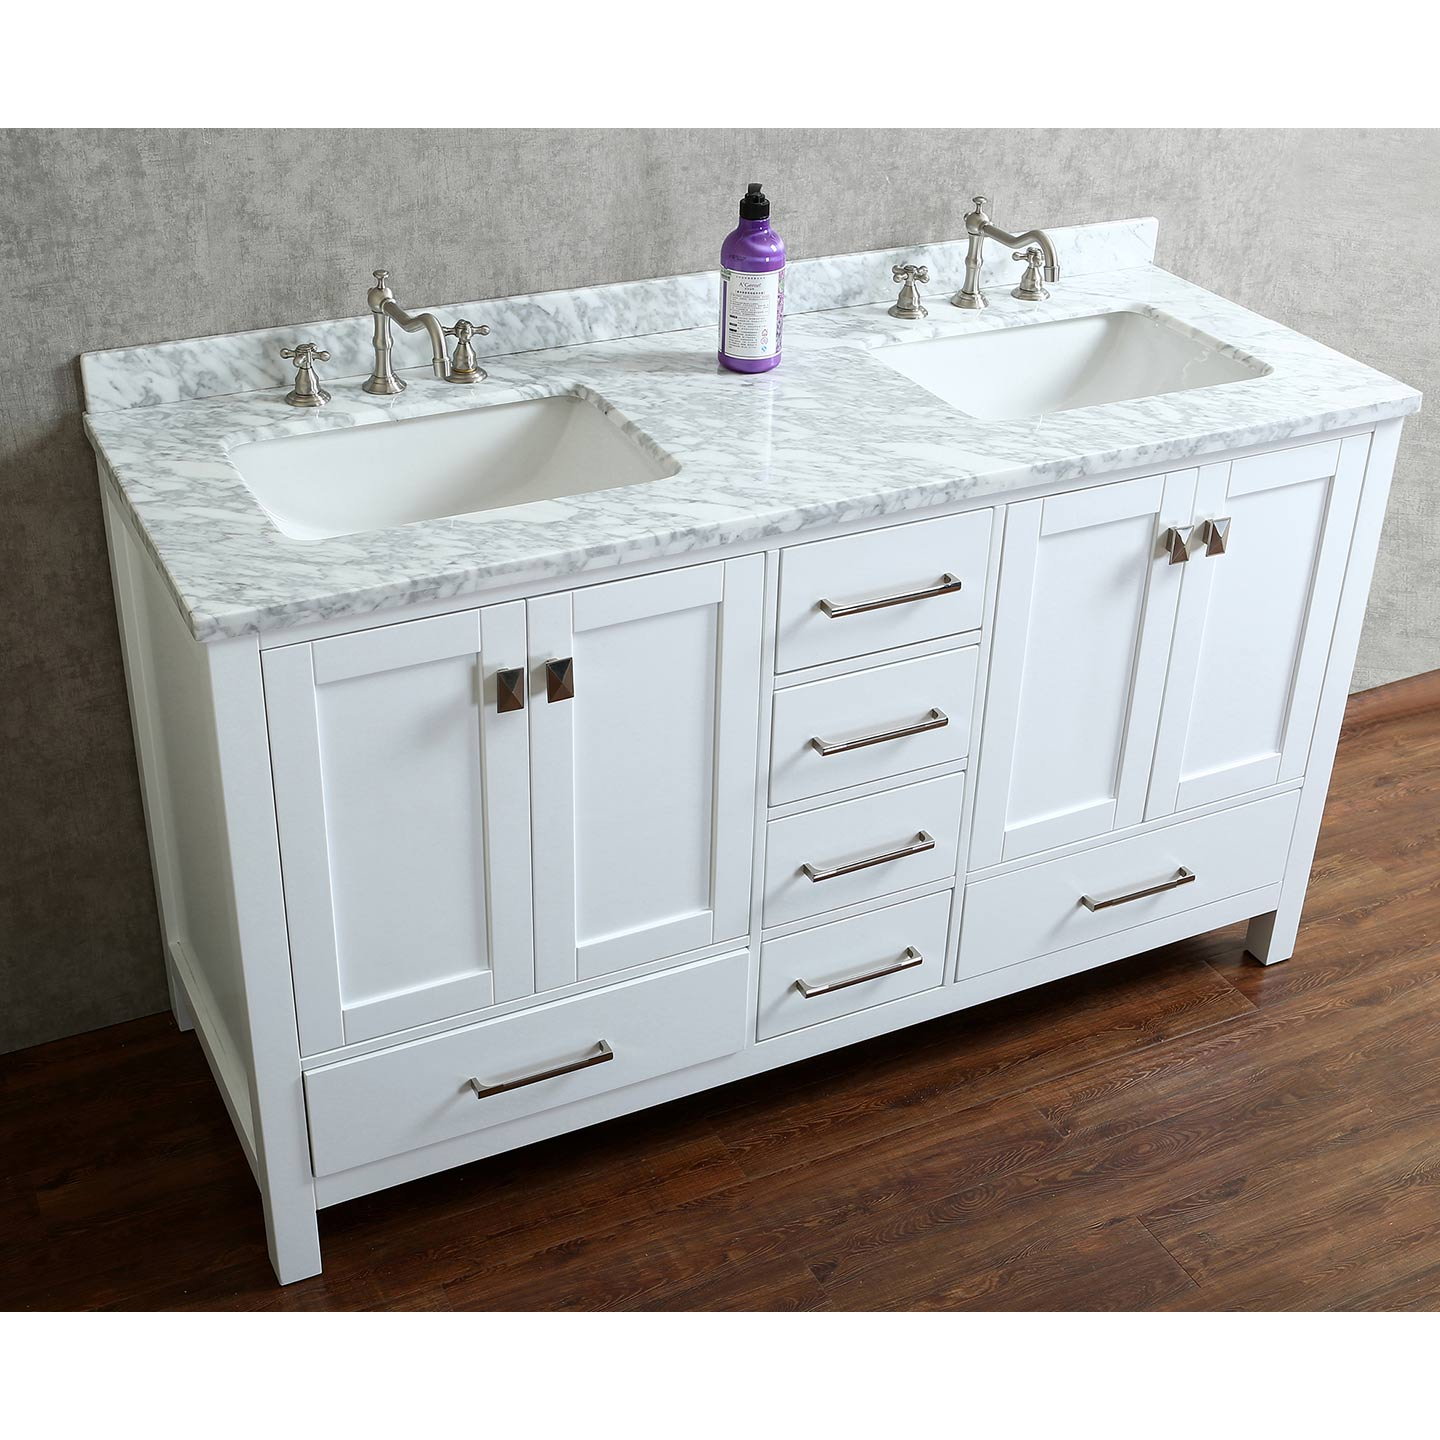 bathroom vanity walcut glass of solid double with wash ceramic basin fresh cabinets wood elegant sink amazon